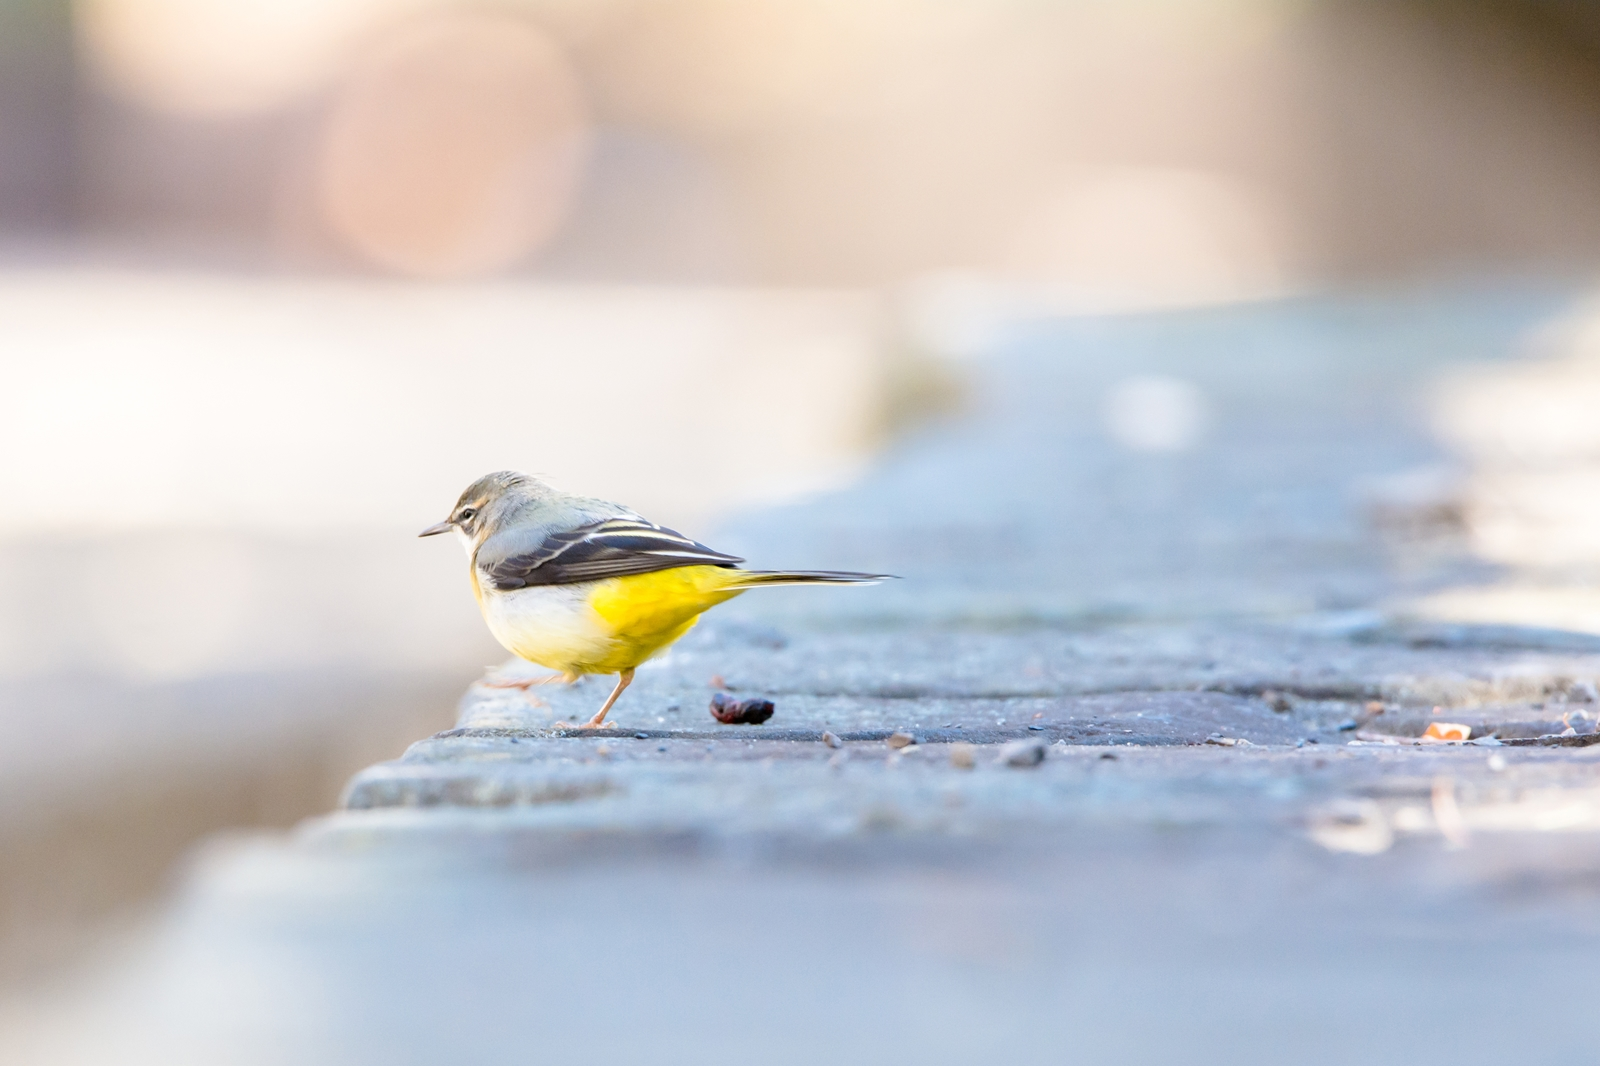 Photo: 今日も歩む I walk again today.  今日も歩む この道を歩む てくてく また明日も その先も  Grey Wagtail. (キセキレイ) #cooljapan #365cooljapanmay  #birdphotography #birds #kawaii  #sigma  Nikon D7100 SIGMA 150-600mm F5-6.3 DG OS HSM Sports [ Day246, January 13th ] (2枚追加:Added 2 photo)